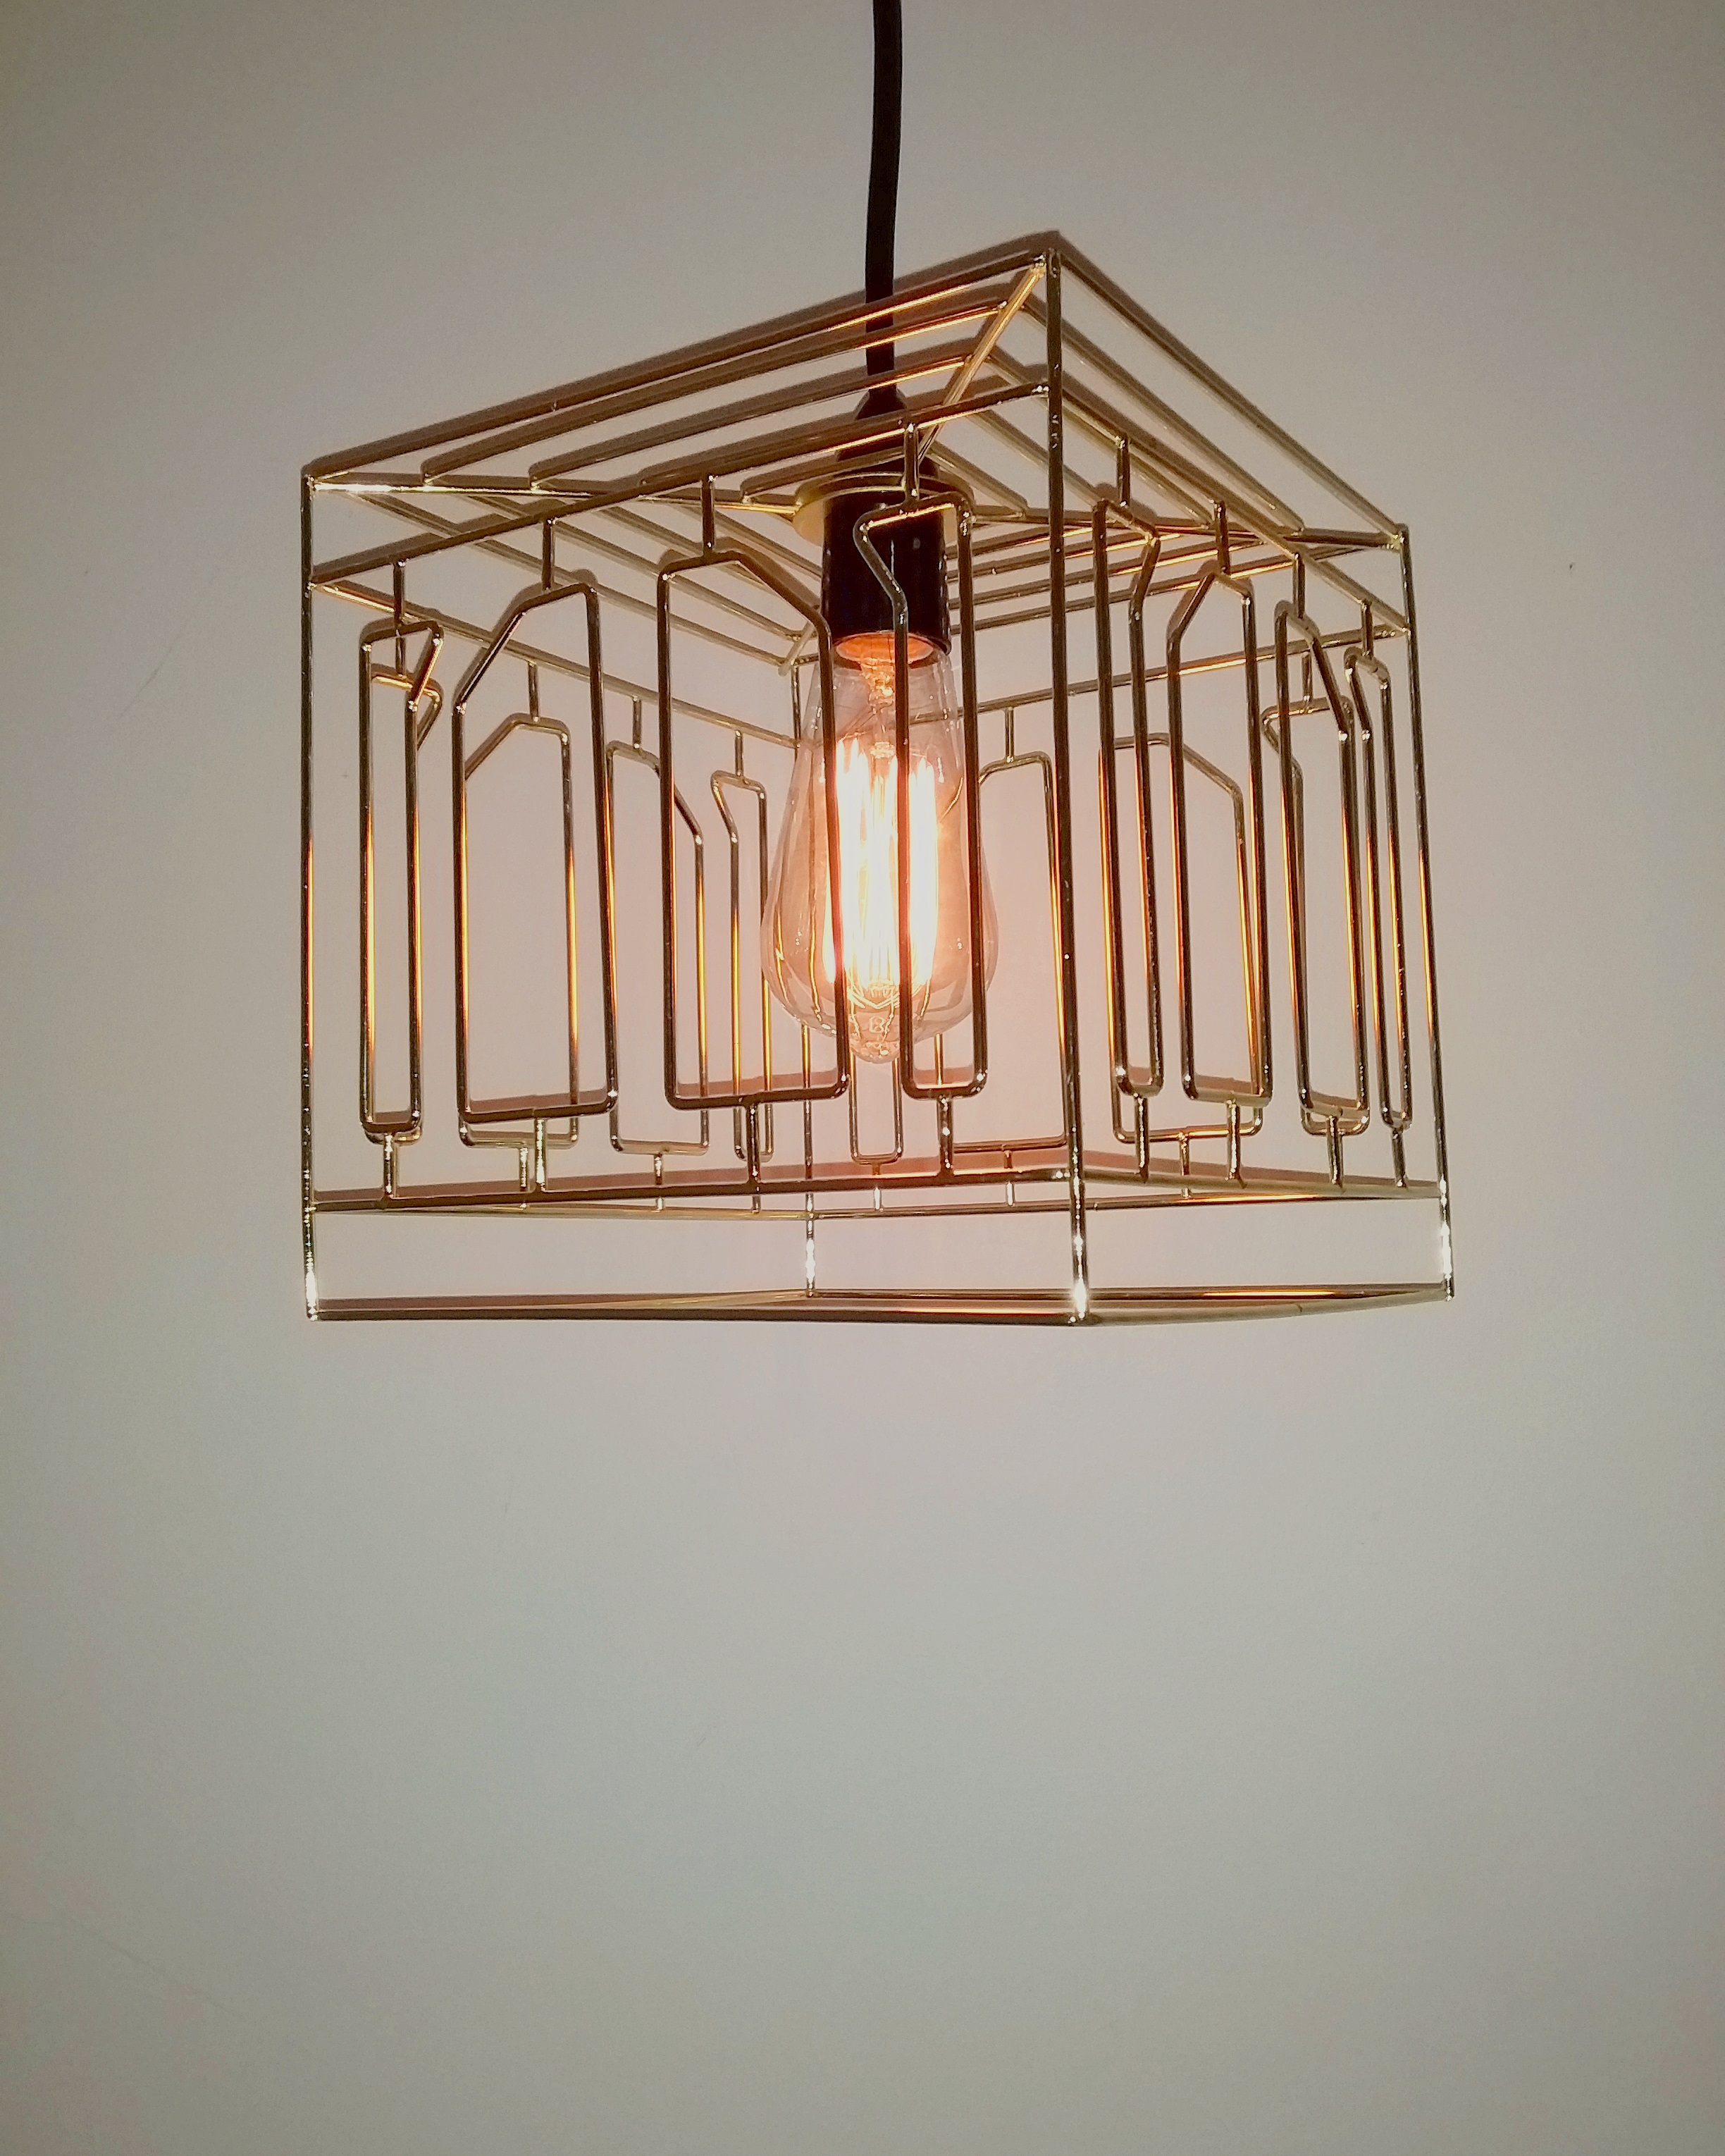 sQUARE CAGE PENDANTS - Gold in colourMeasures: H 220mm x W 220mm x D 220mmIndividual Shade with Edison Drop & Plug $35 includes bulbOption 10m Festoon cable, Drops with Shades $245.00 includes bulbs.